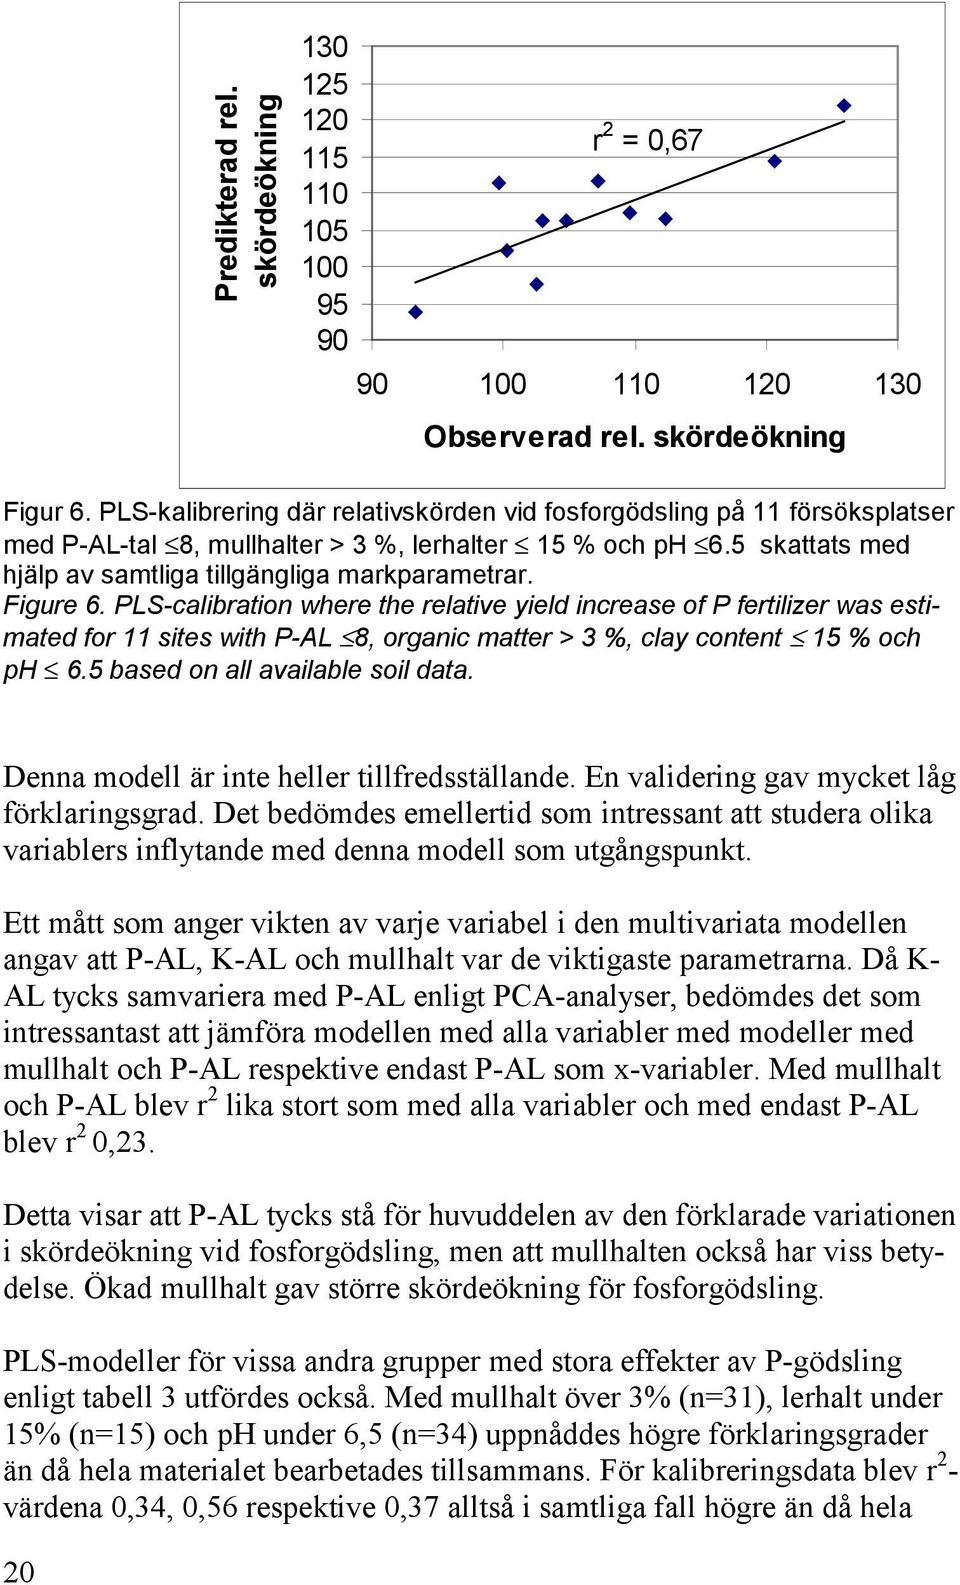 Figure 6. PLS-calibration where the relative yield increase of P fertilizer was estimated for 11 sites with P-AL 8, organic matter > 3 %, clay content 15 % och ph 6.5 based on all available soil data.